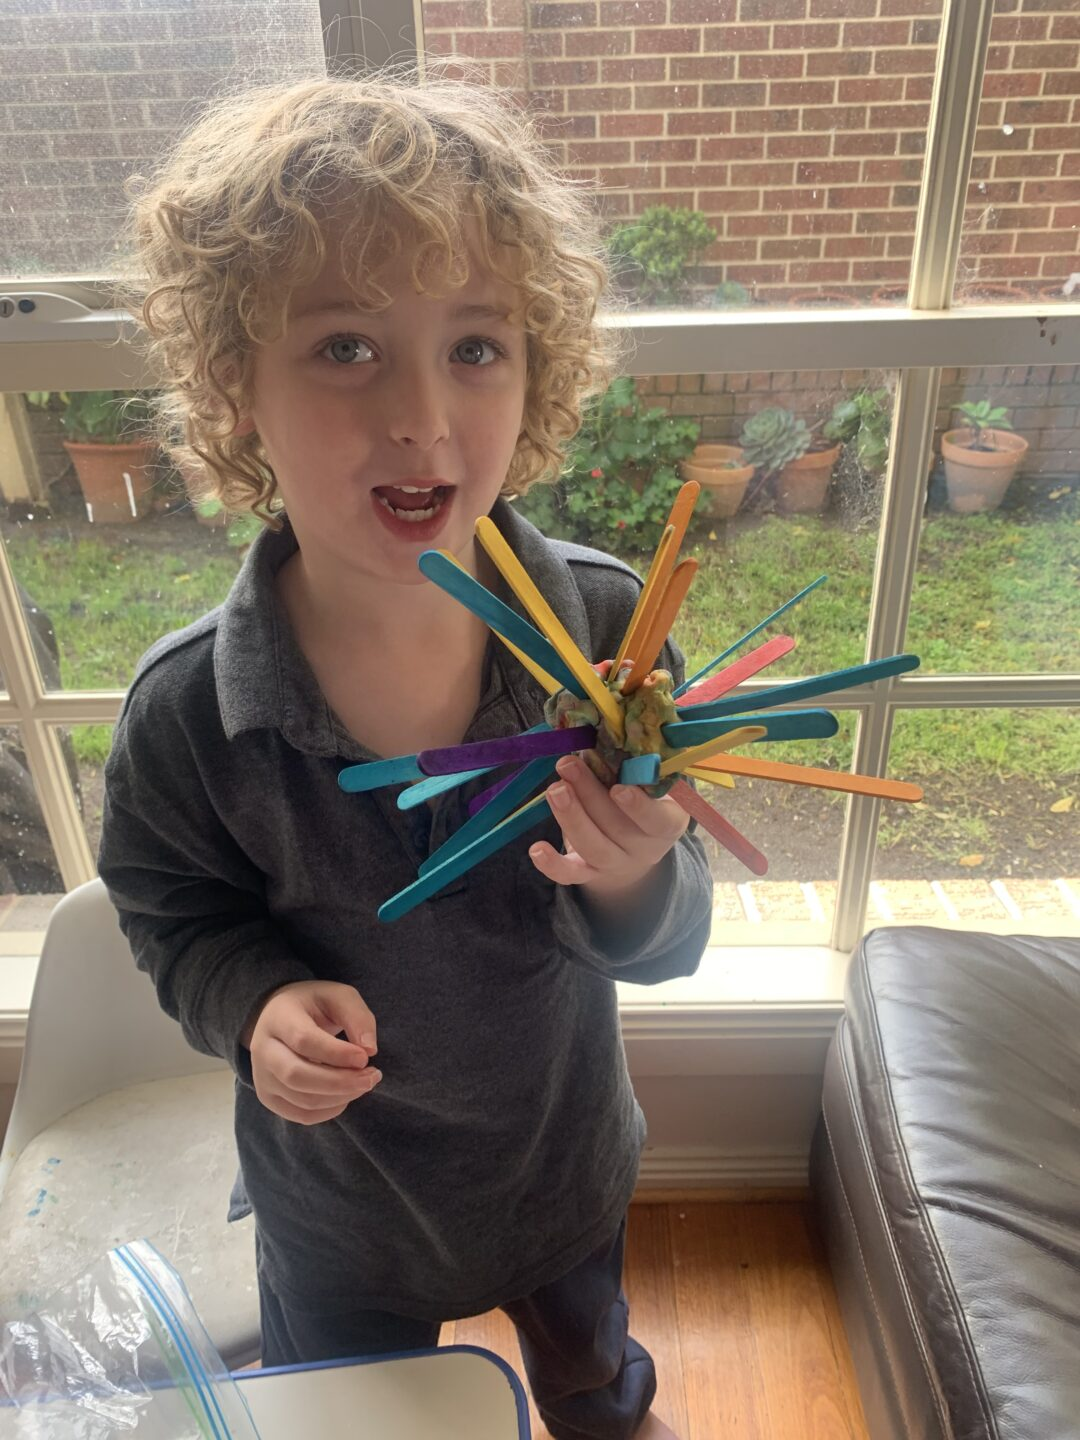 a young boy with curly blond hair holding a sculpture of a coronavirus spore made from pop sticks.